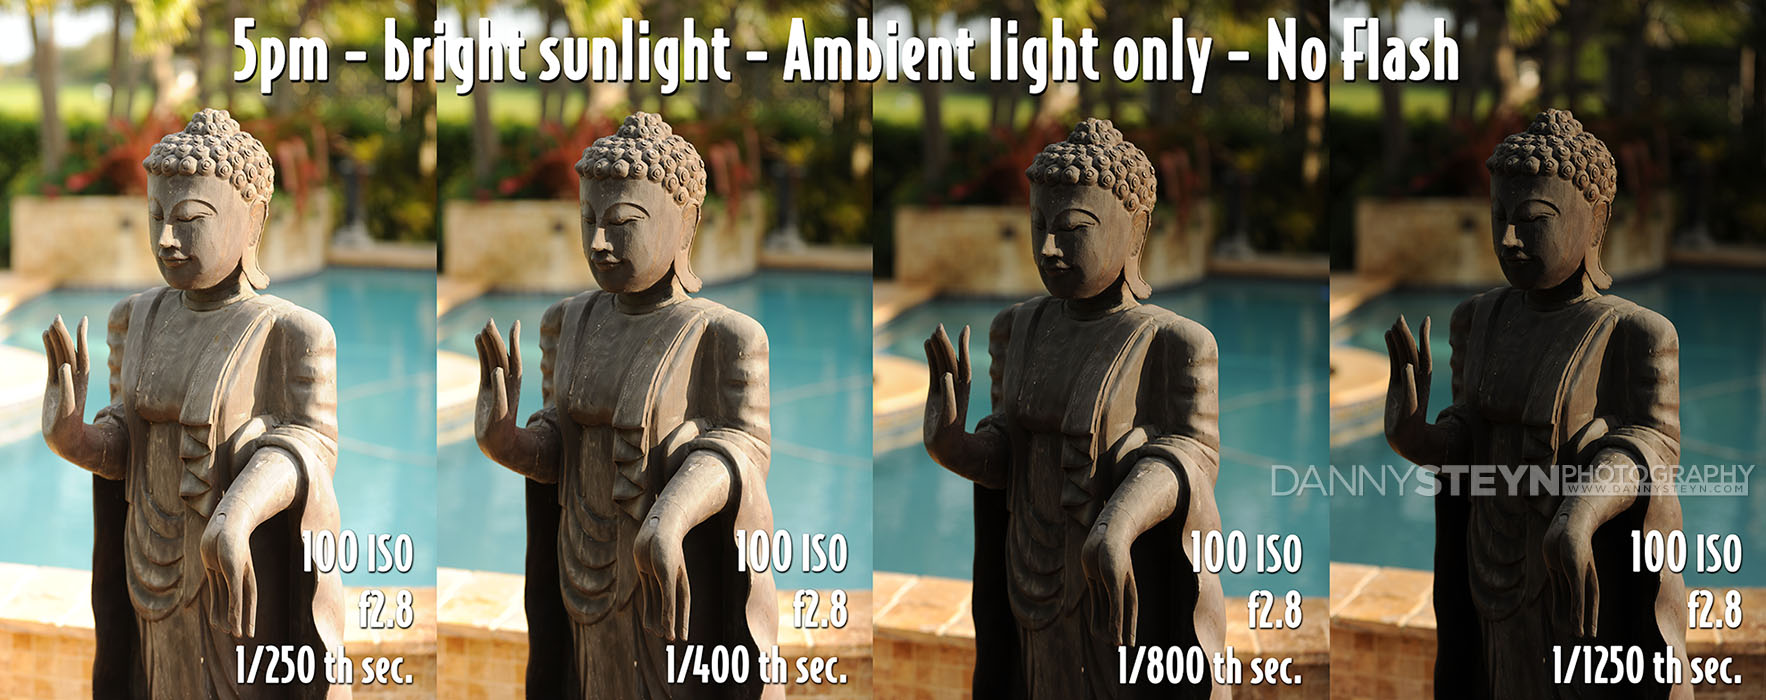 Ambient Light Exposure for Hypersync with Nikon D3x with SB900 and SB800 speedlights